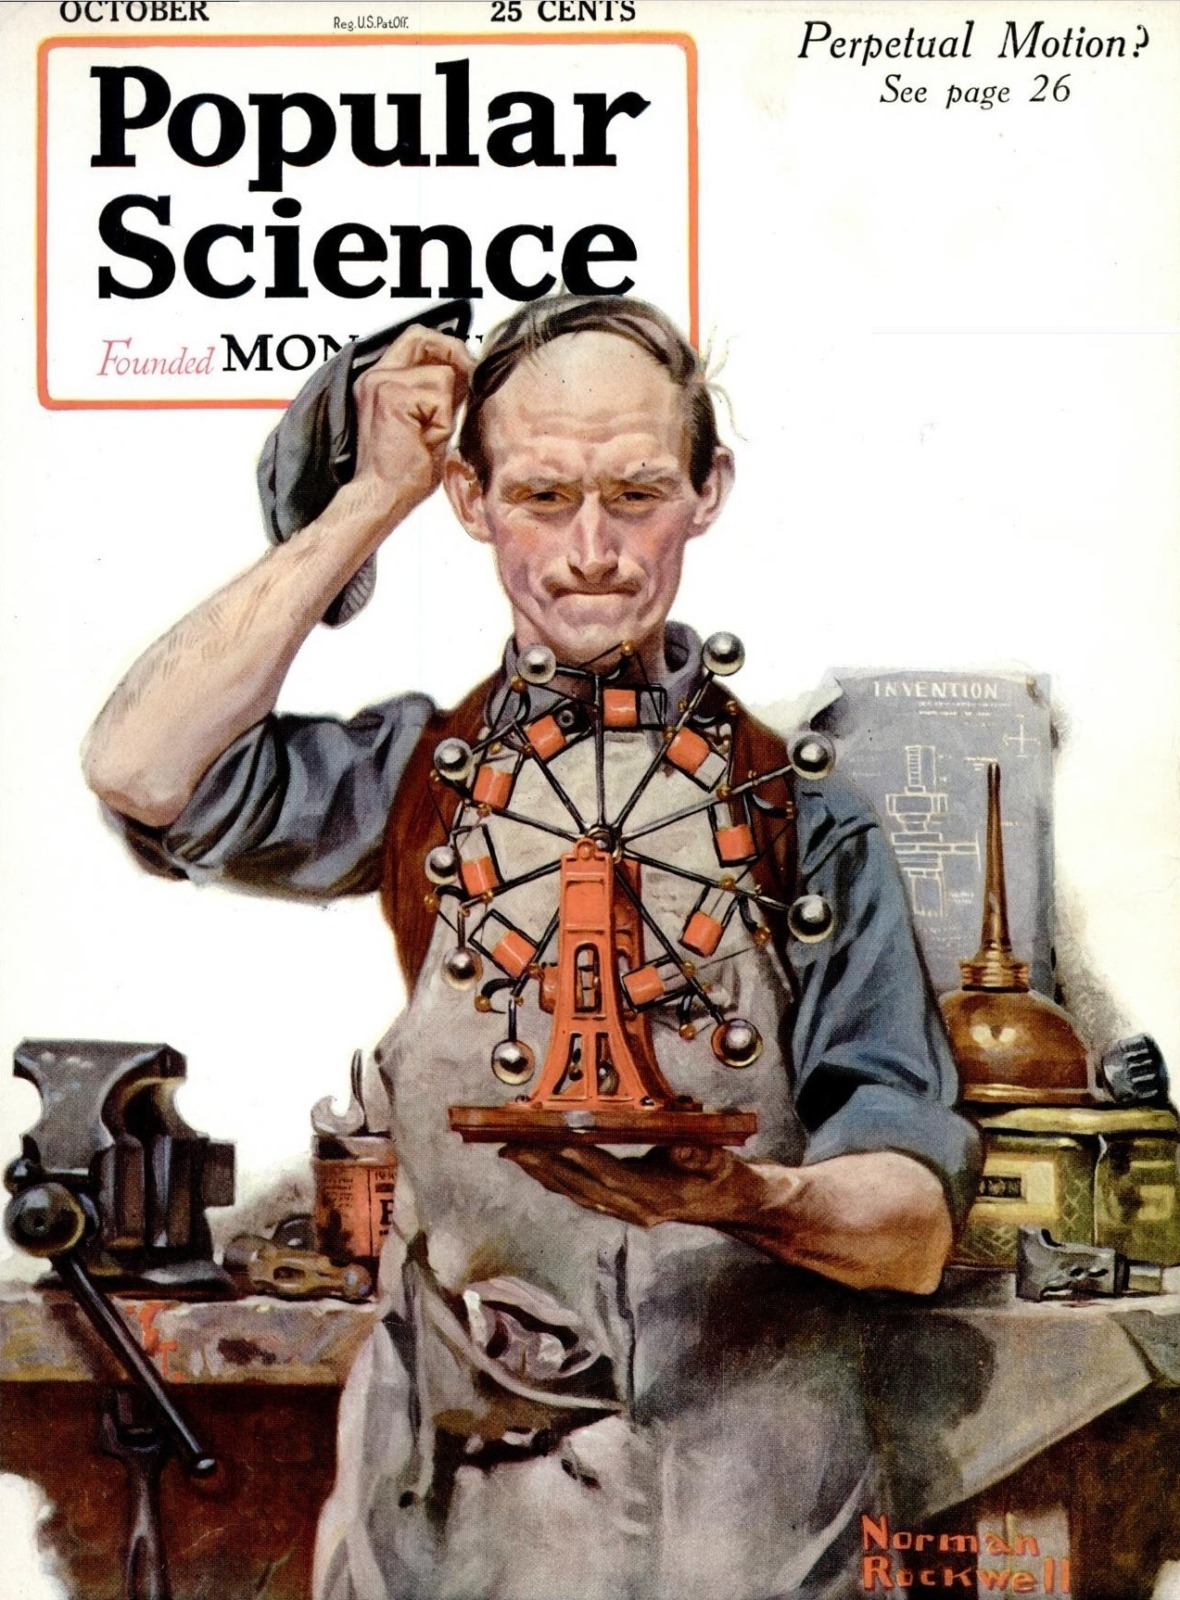 Perpetual Motion by Norman Rockwell [Public Domain]